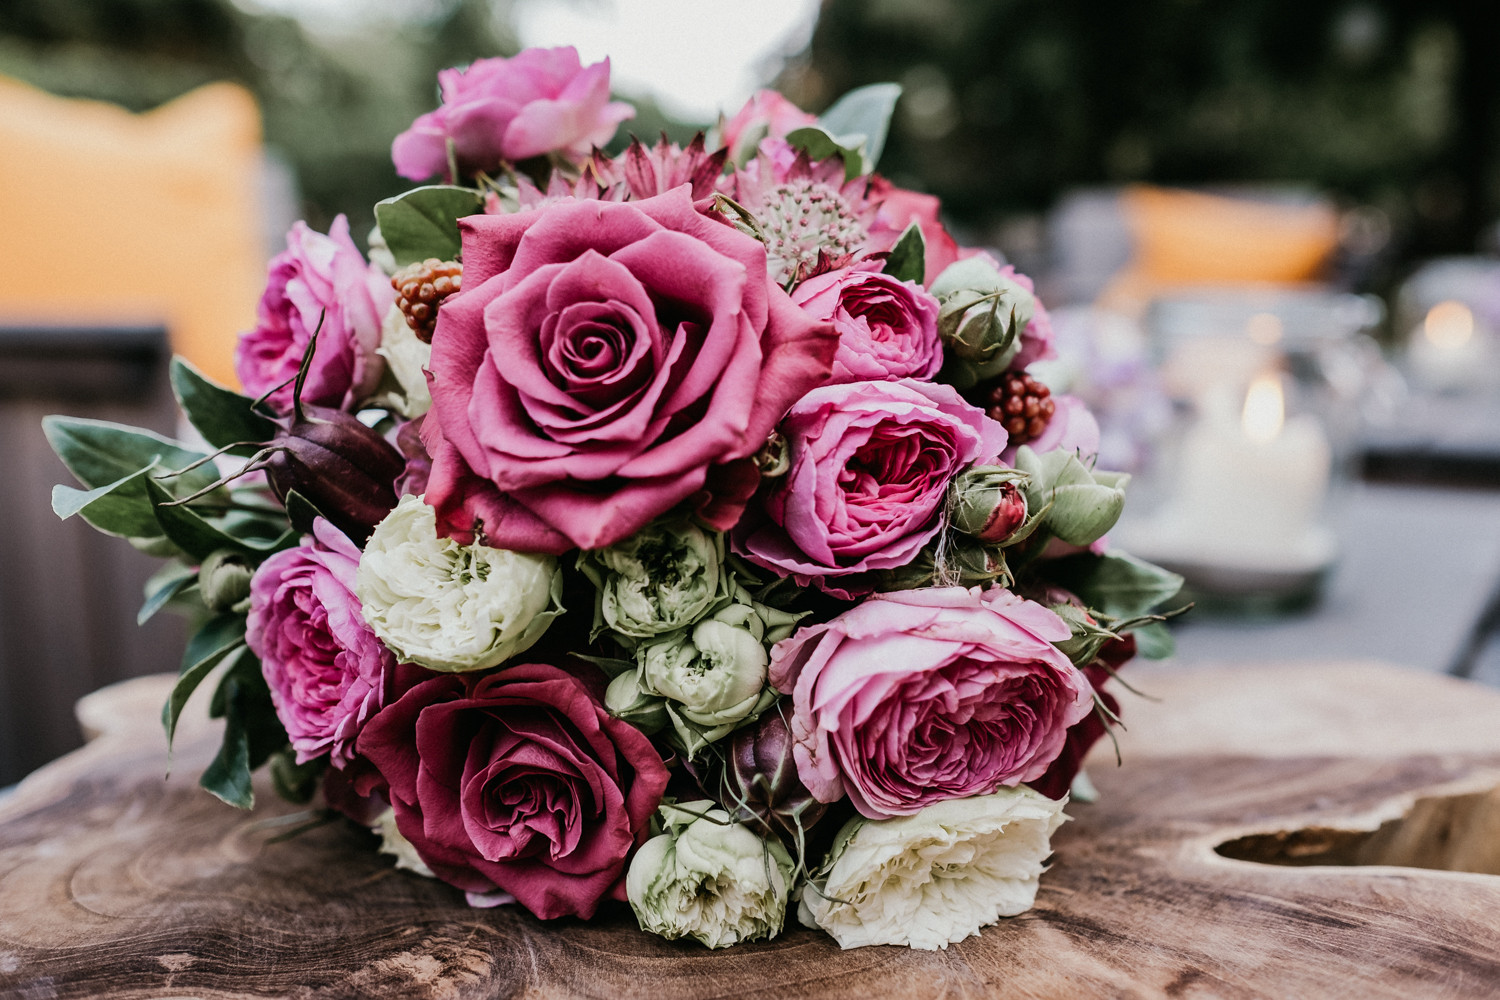 Wedding Flowers - SoulMade Fotodesign